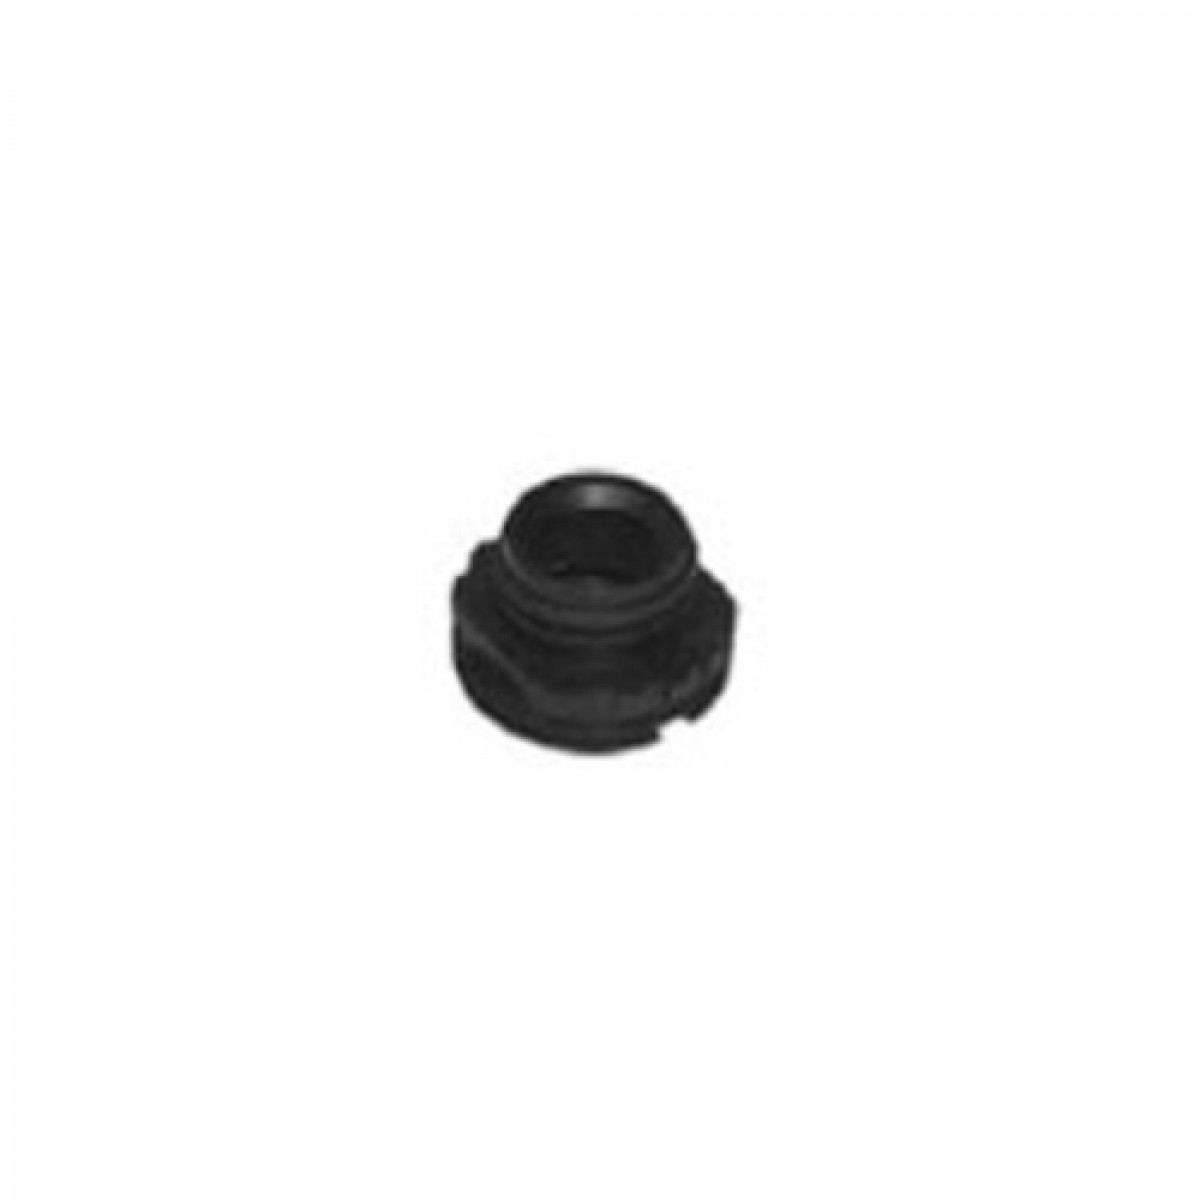 602665 Viqua UltraViolet Lamp Sleeve Bolt